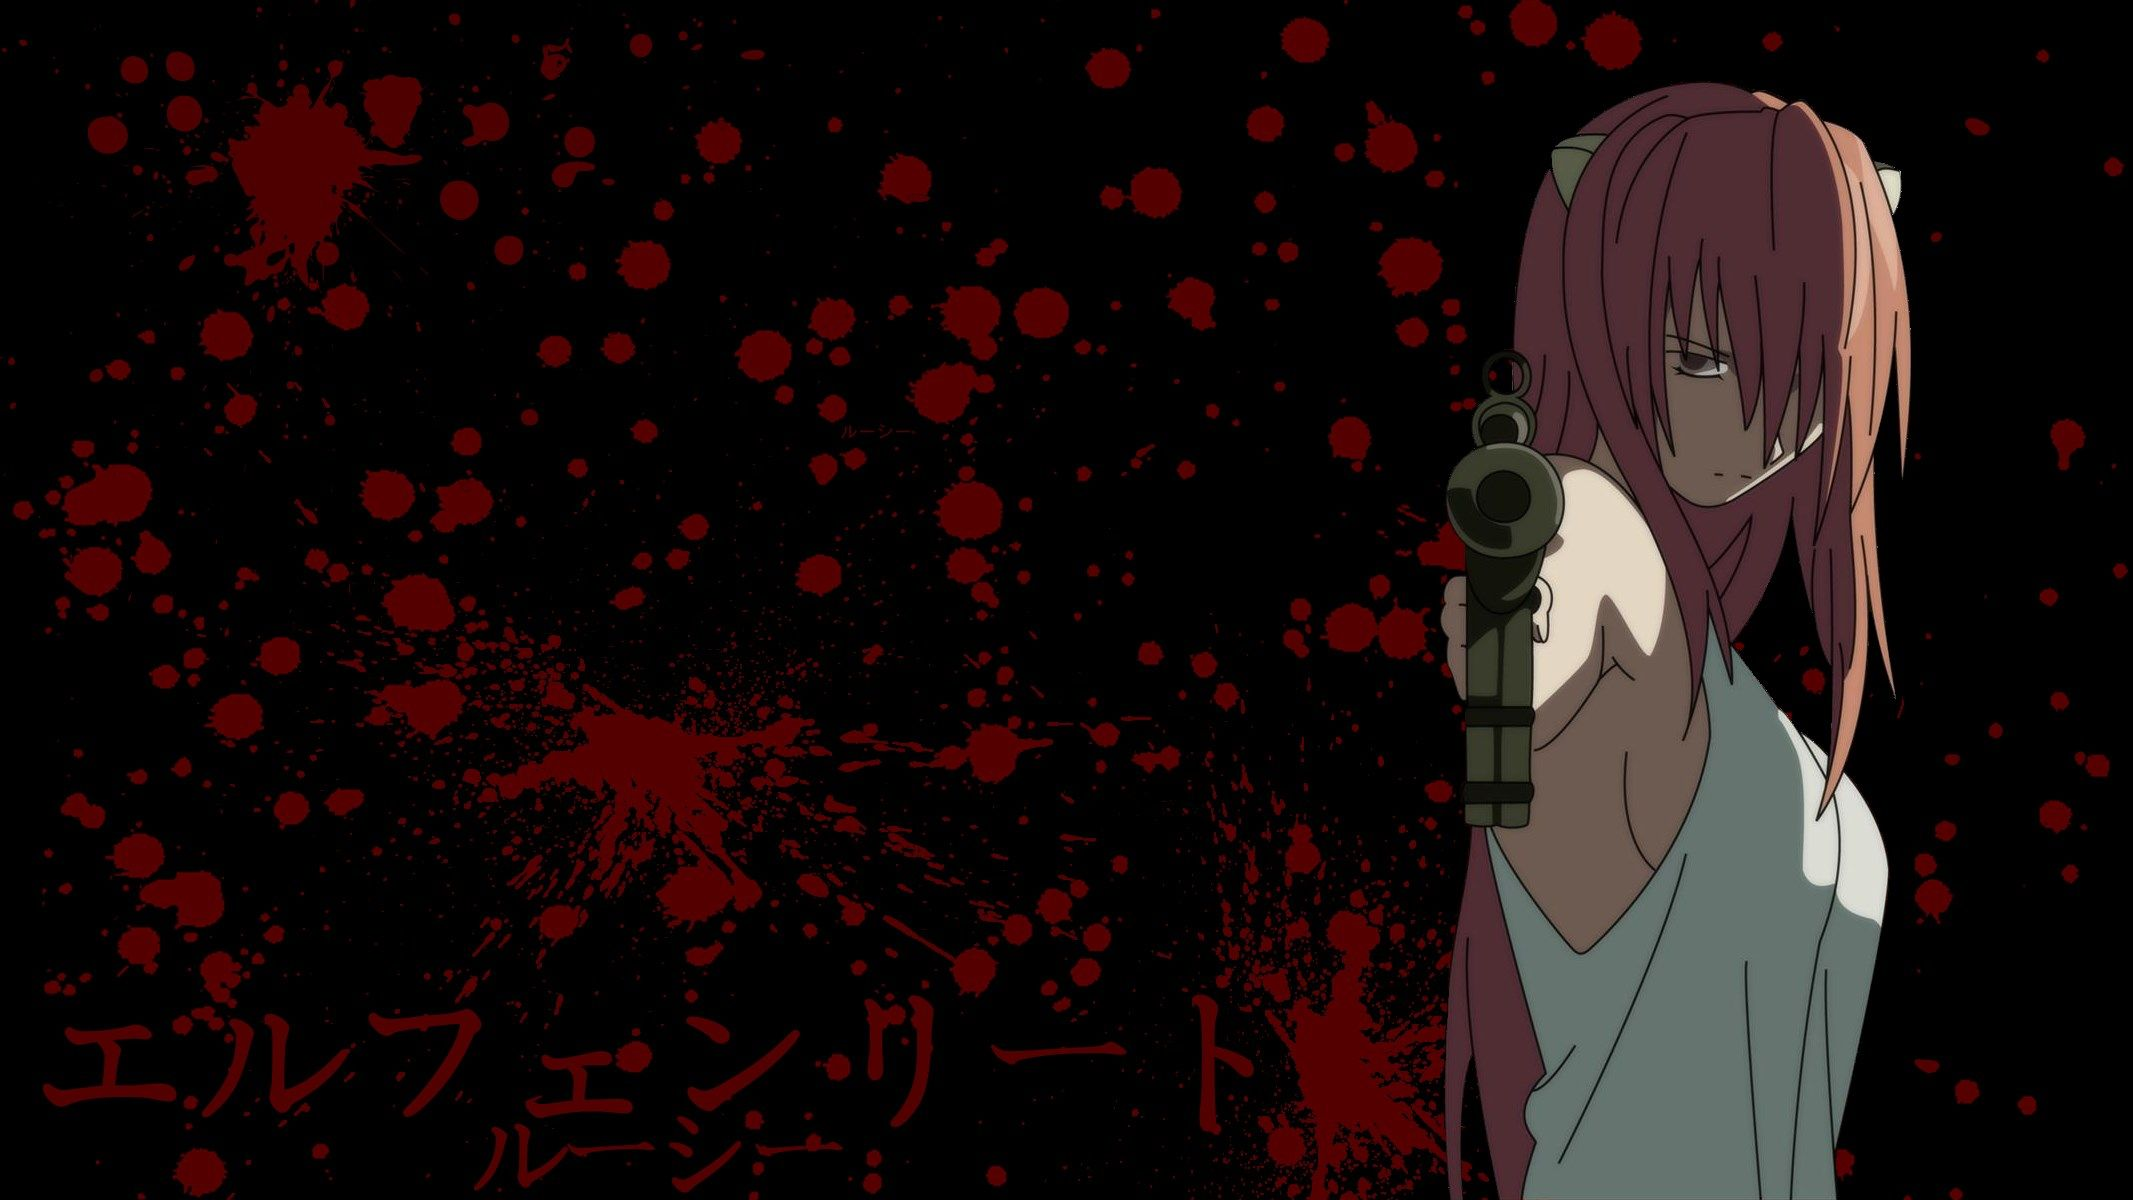 Pin By Aaliyahfw On Elfen Lied In 2020 Anime Anime Wallpaper Elfen Lied